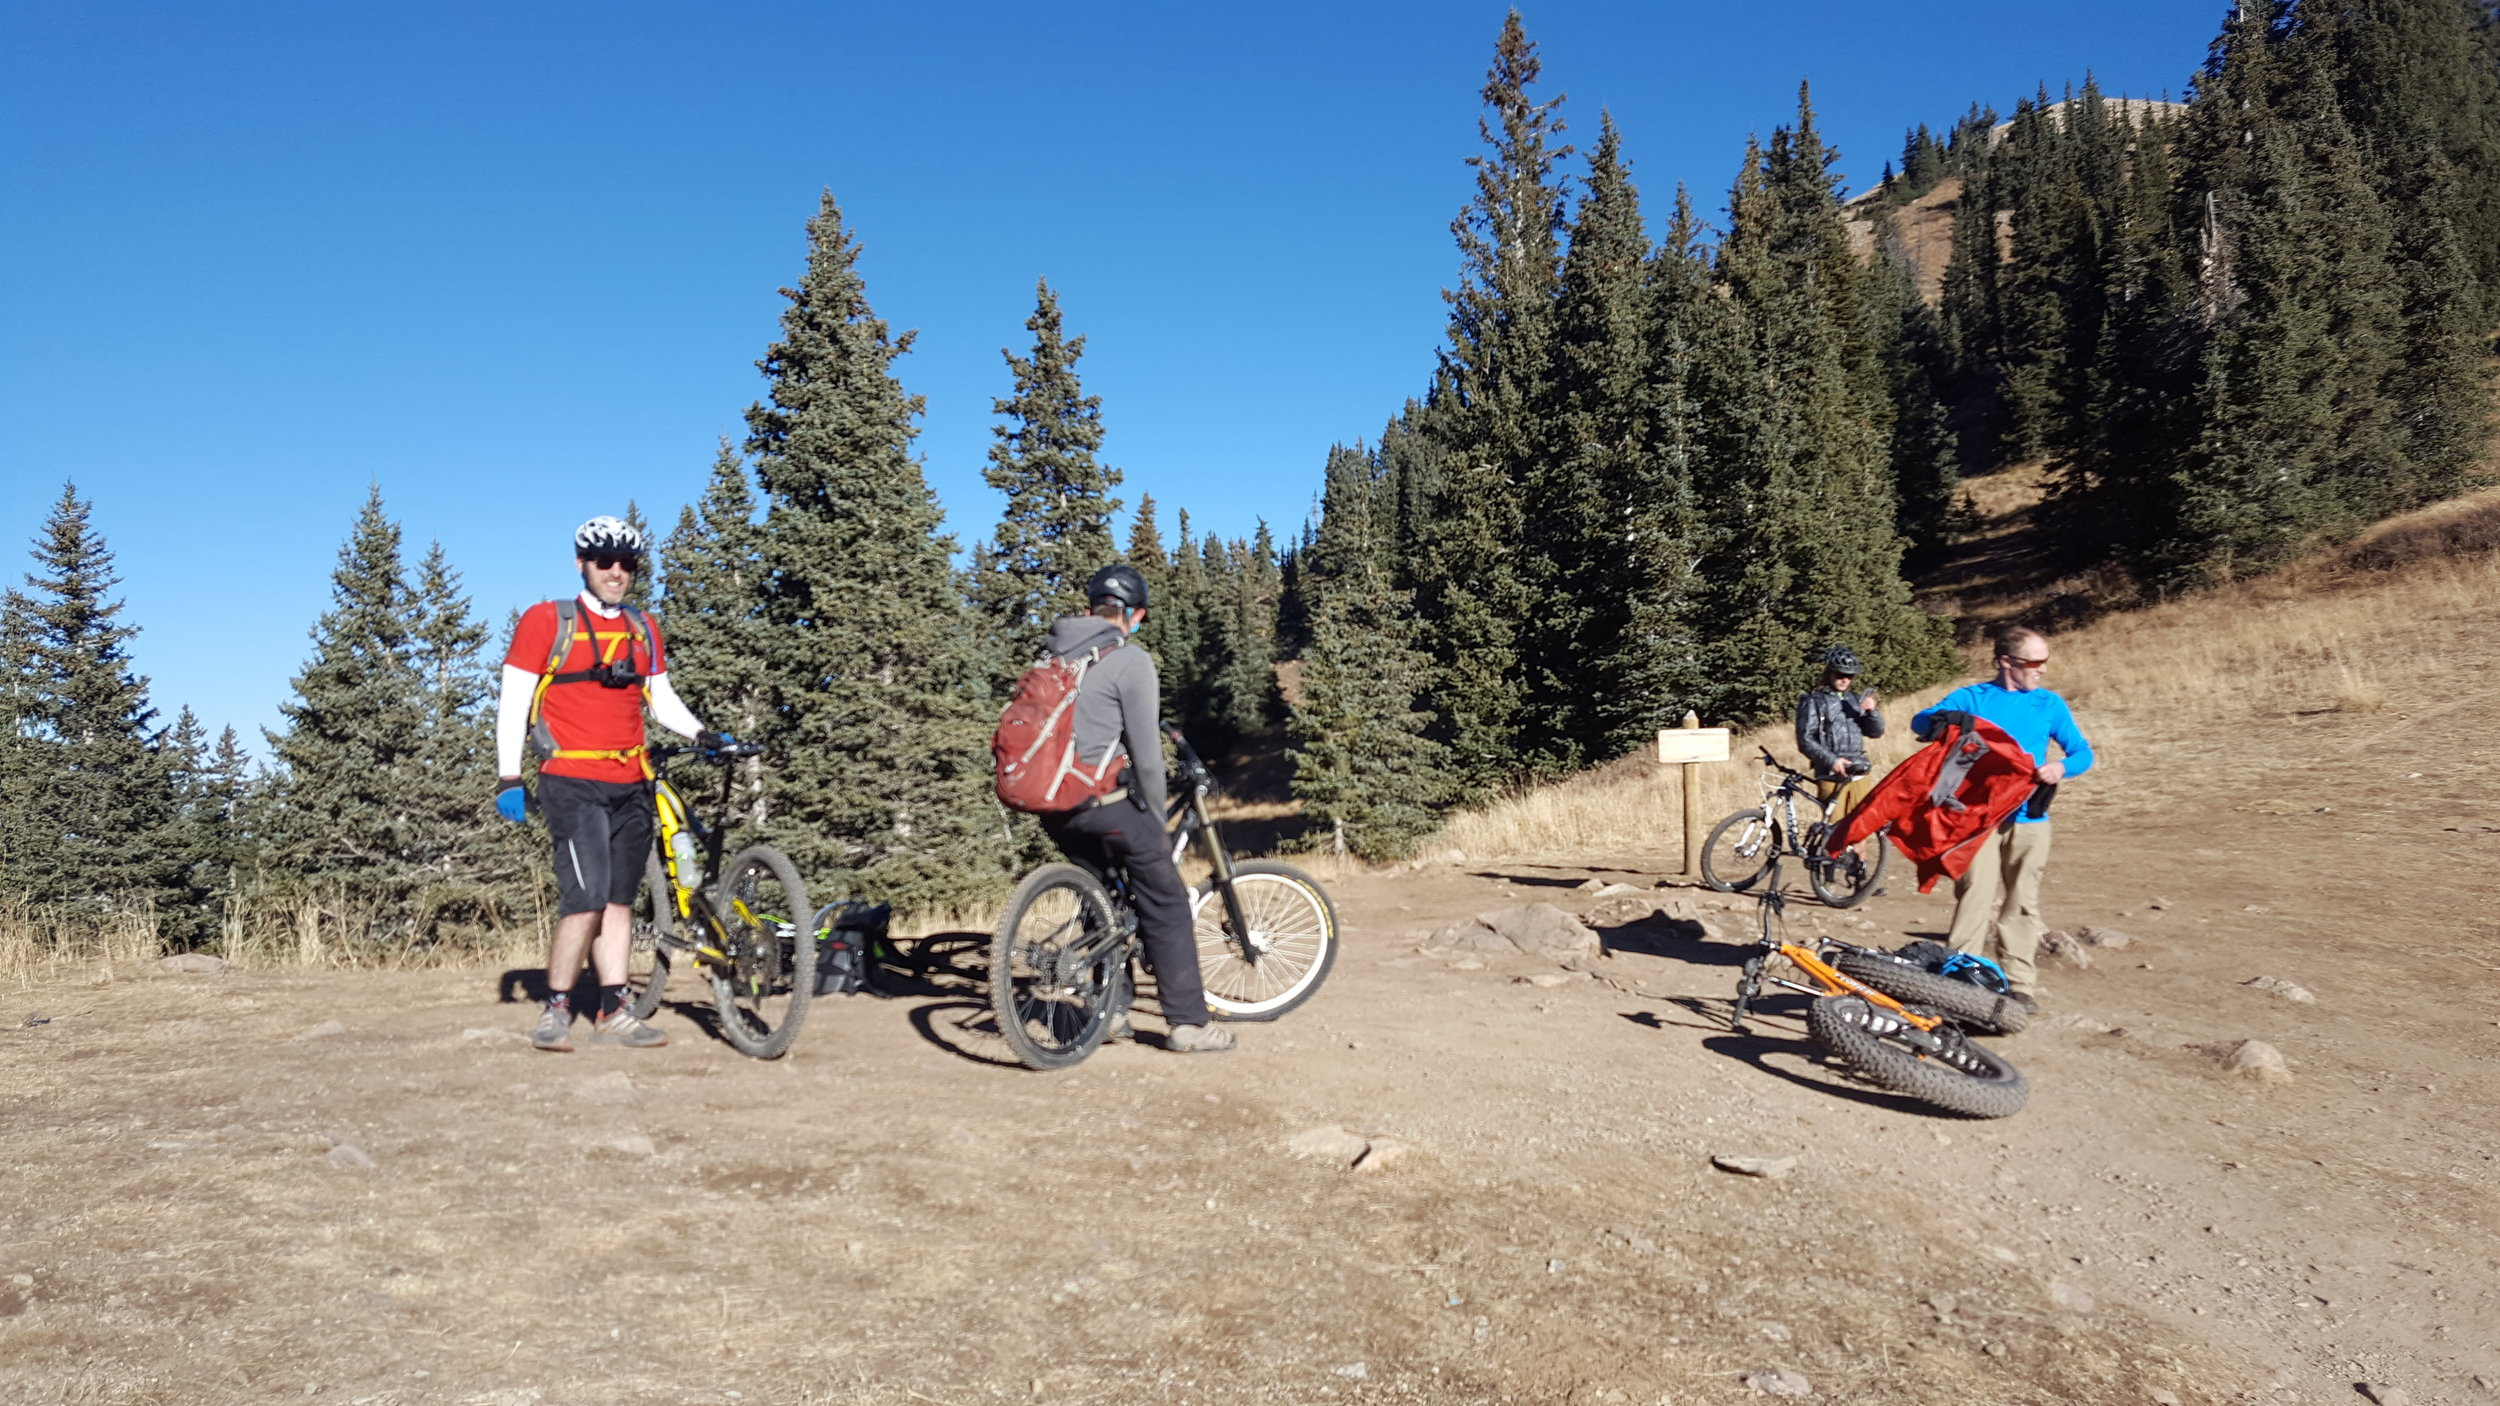 Group rides are always a lot of fun. Our group takes a break after climbing Burro Pass on the Whole Enchilada.